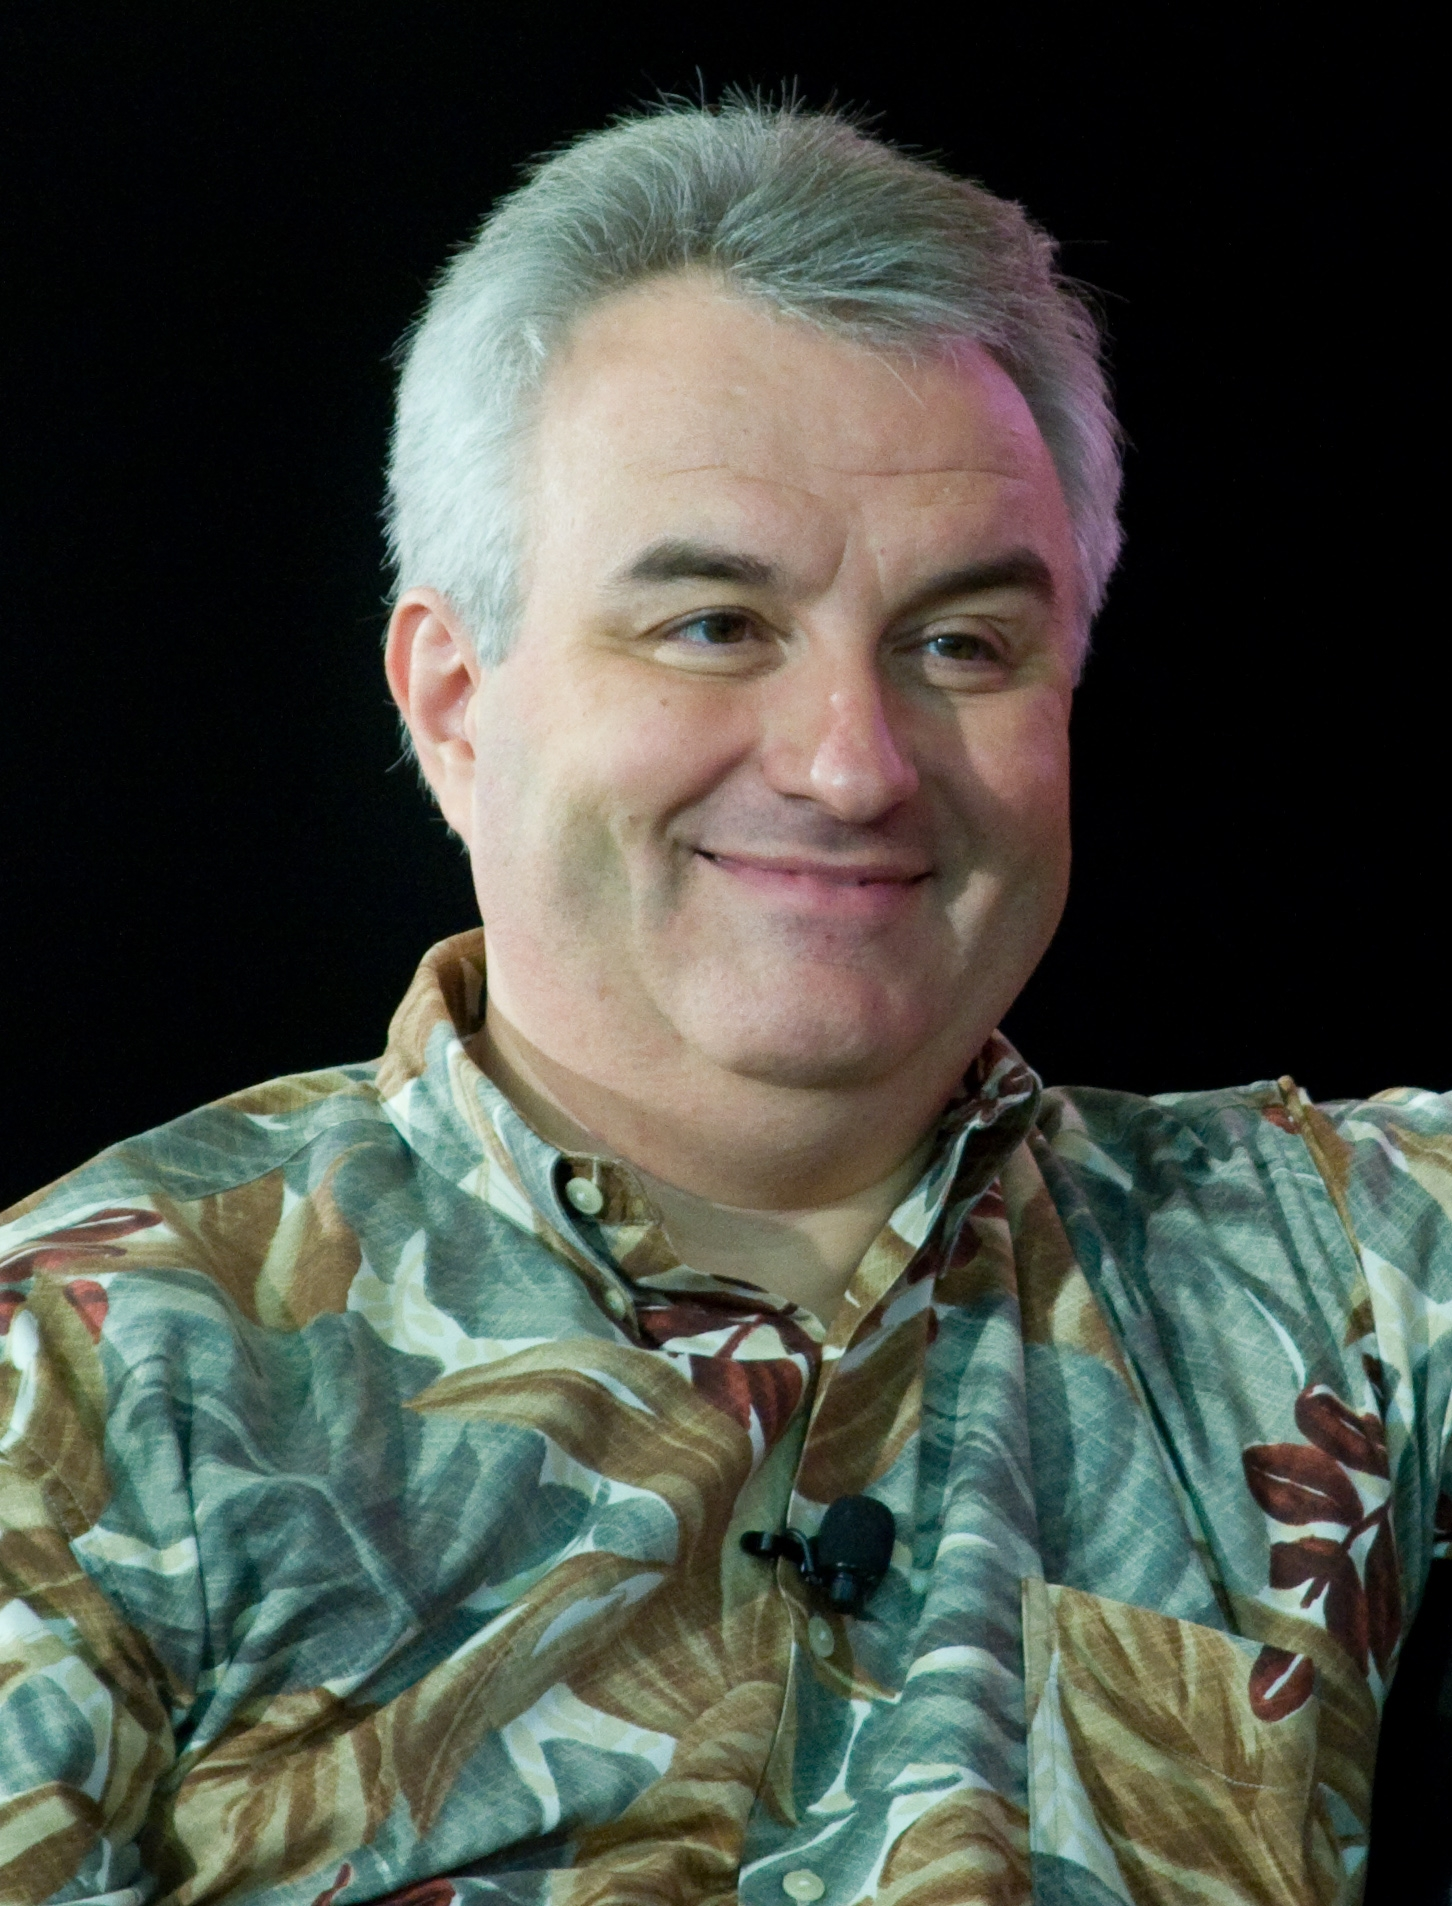 The 60-year old son of father (?) and mother(?), 170 cm tall Leo Laporte in 2017 photo